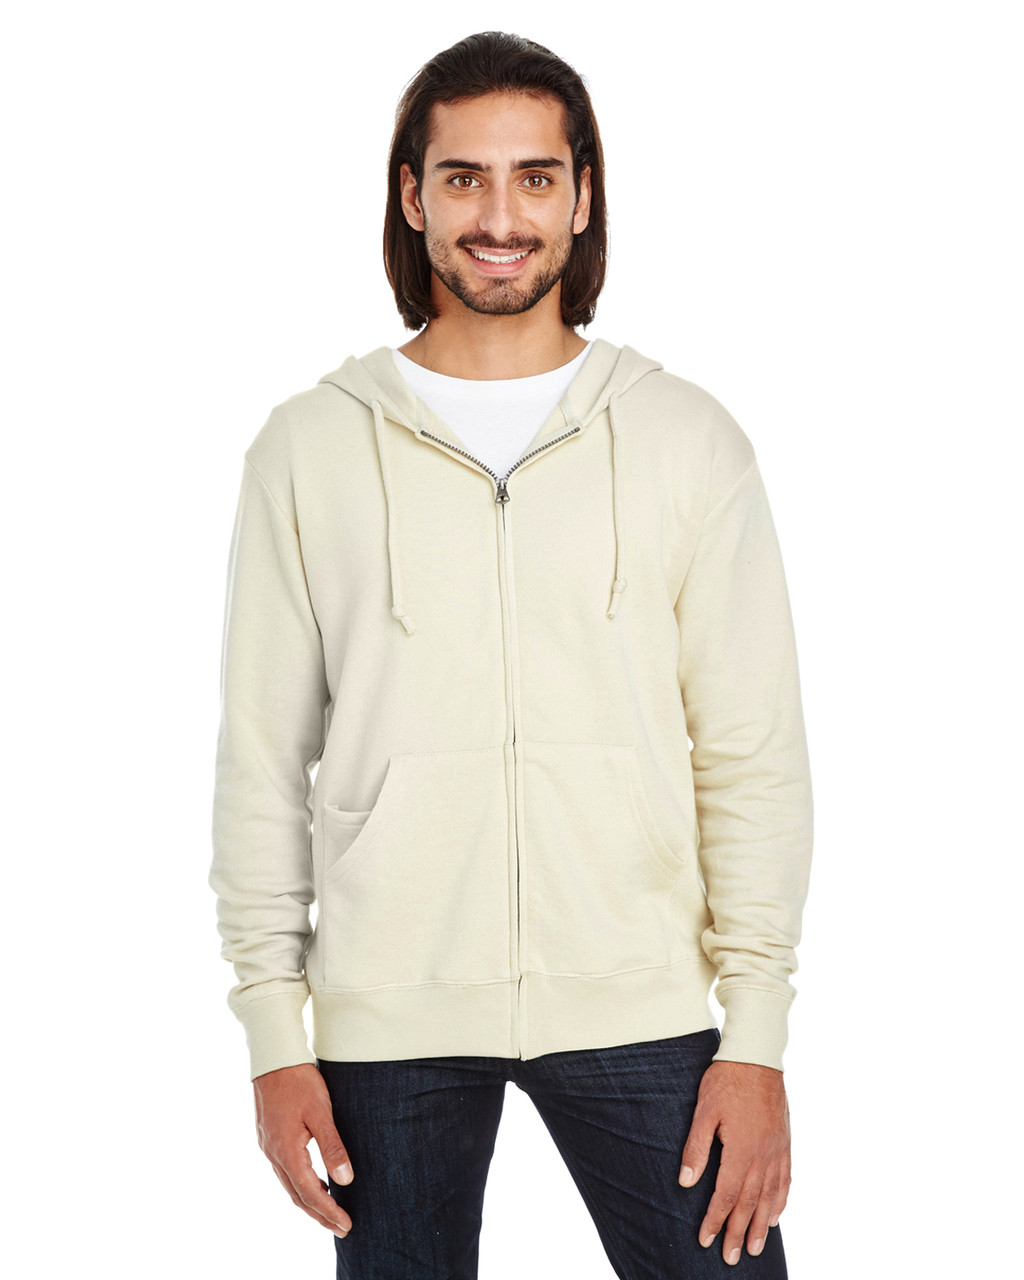 Cream  - 321Z Threadfast Unisex Triblend French Terry Full-Zip Sweater | Blankclothing.ca